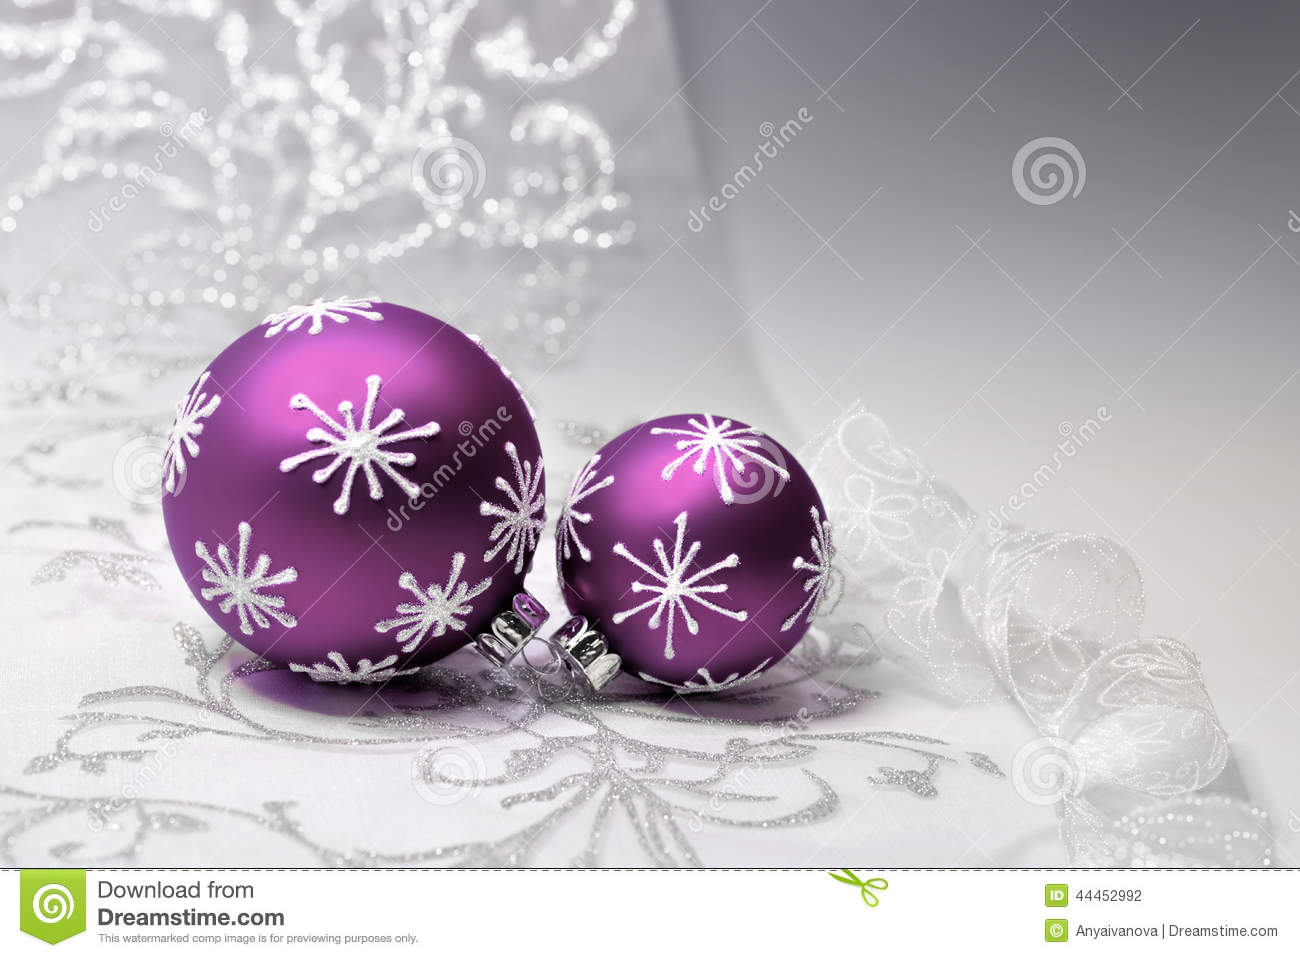 purple christmas decorations with silver ornament - Purple Christmas Decorations